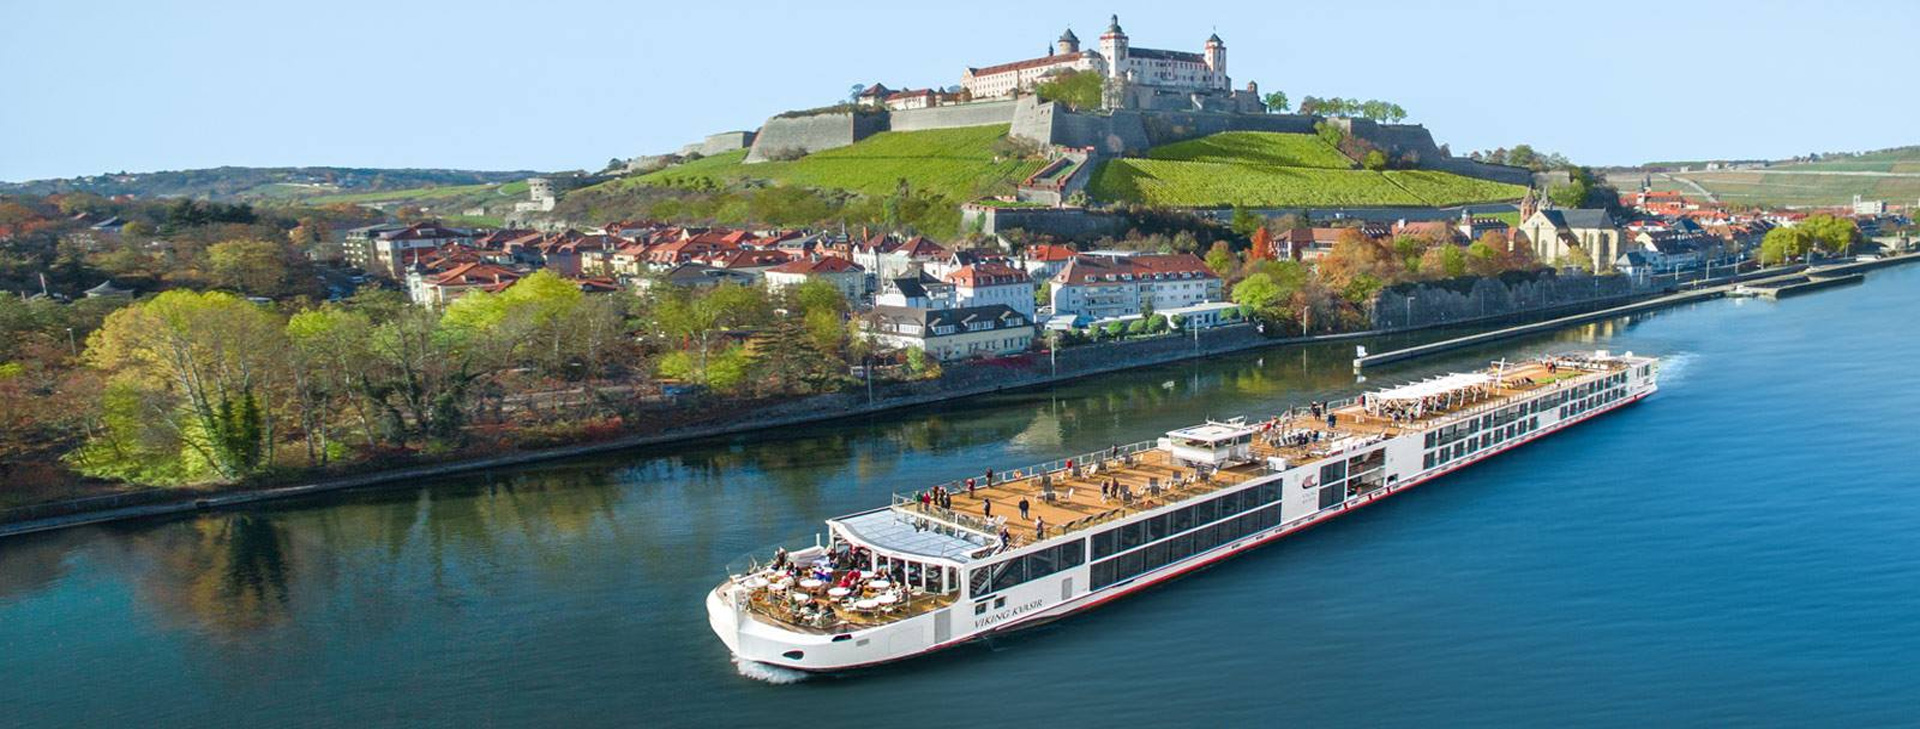 River Cruise travel specialist